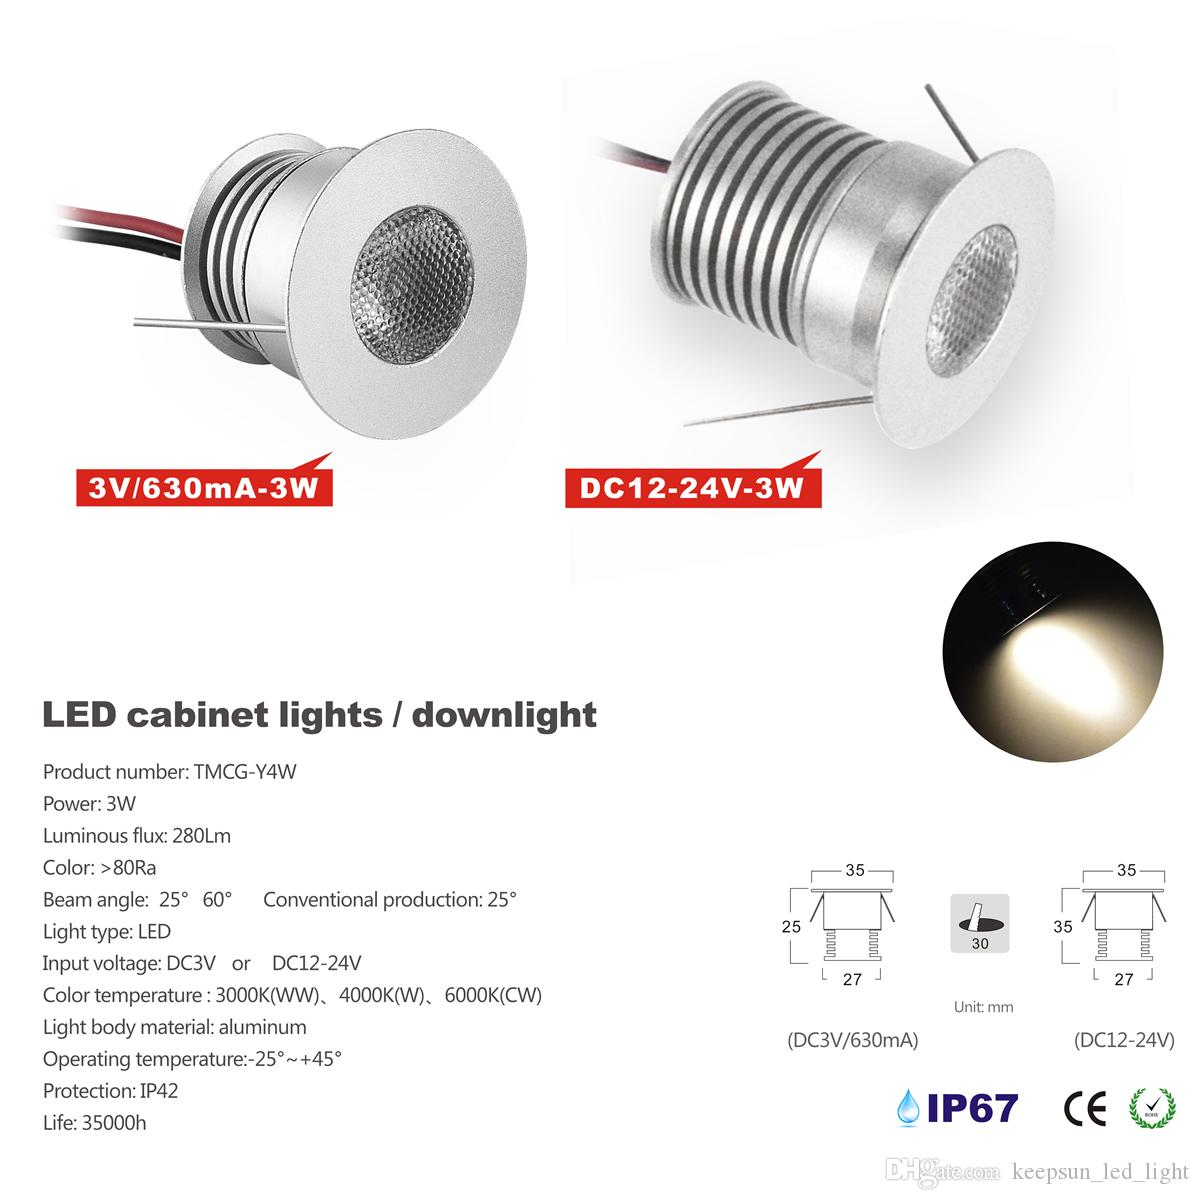 Modern 12v Kitchen Led Under Cabinet Lights Tubes 50cm: Mini Downlight 3W LED Cabinet Light With Cree Chip,Modern